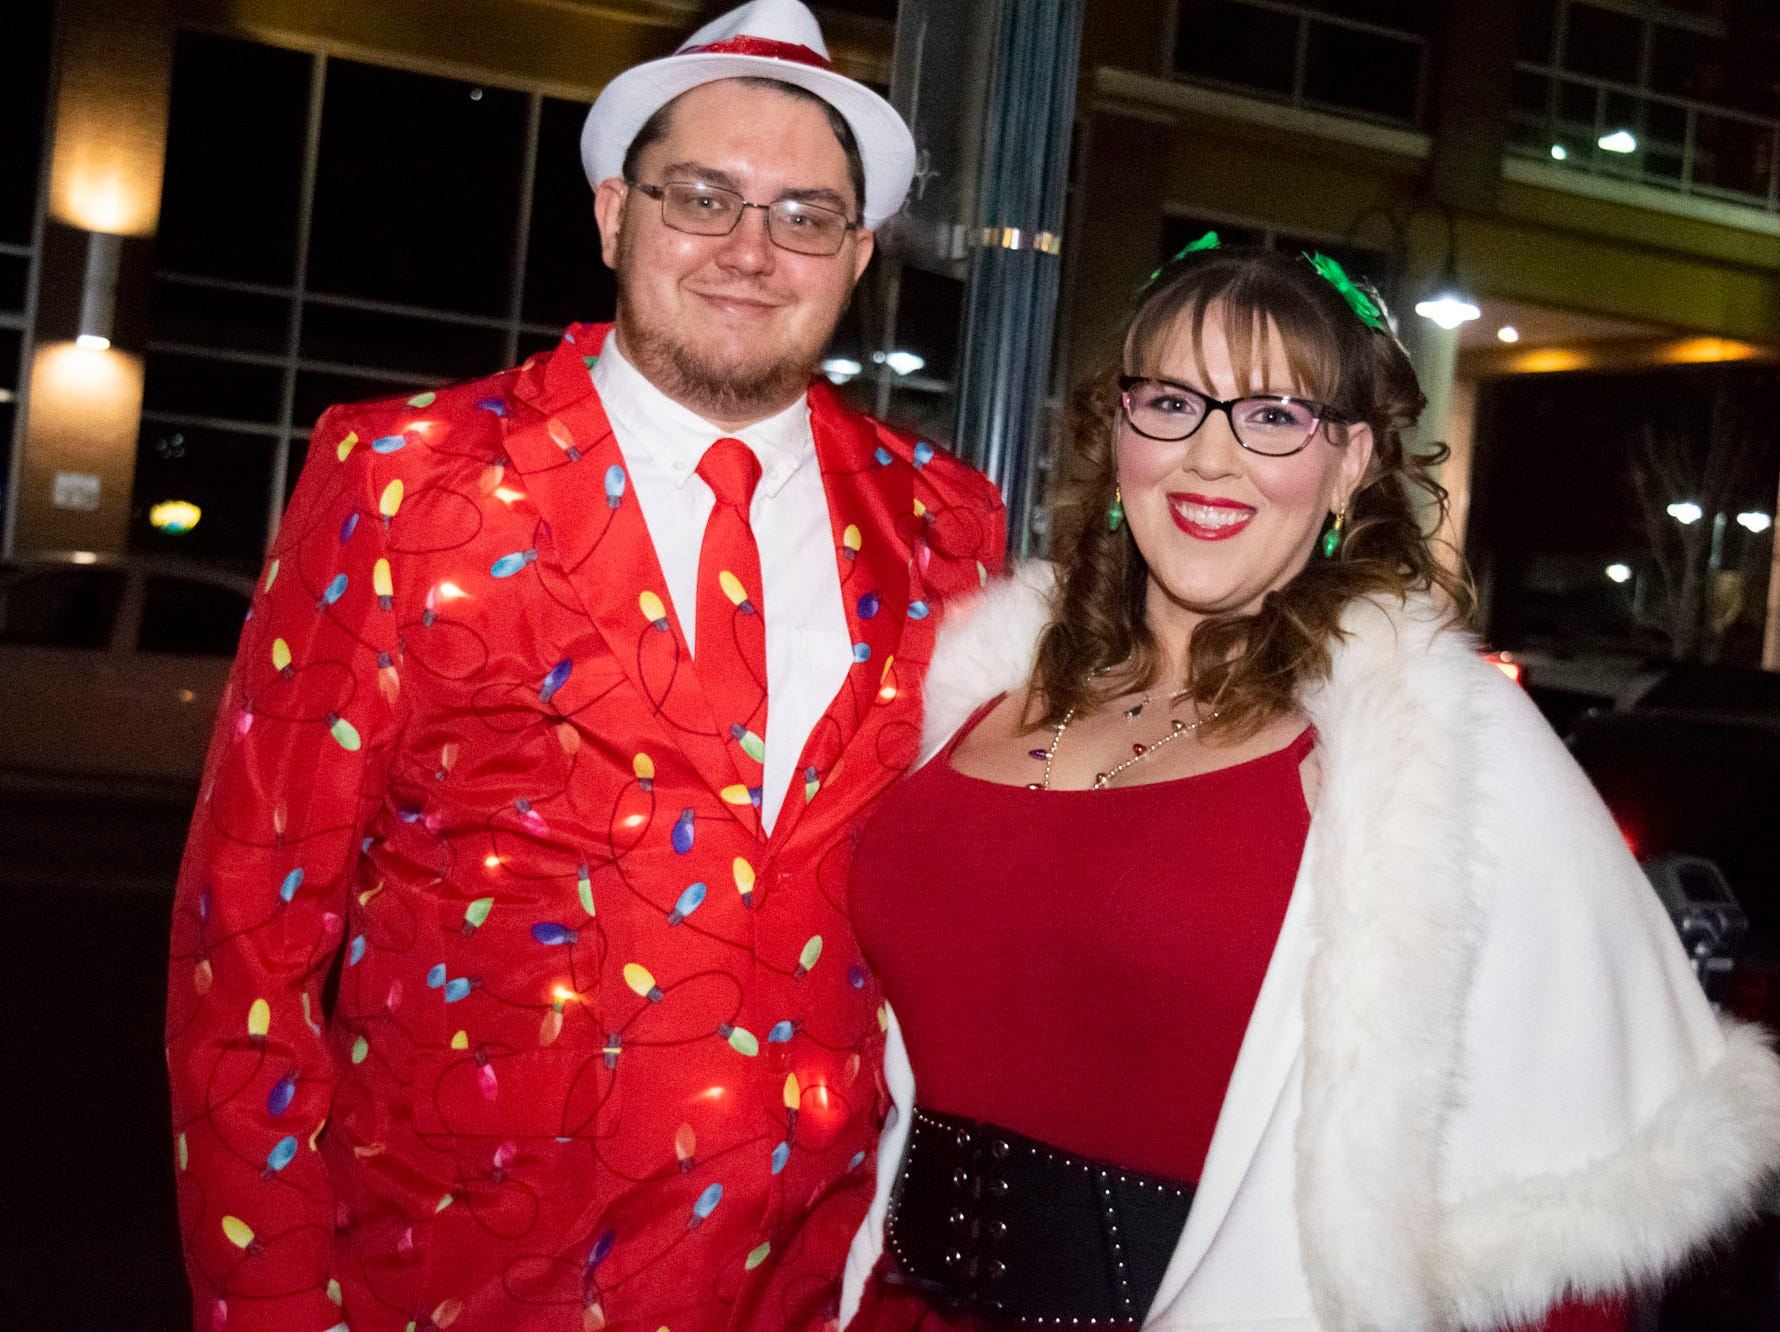 Joe and Jenny Krall get merry at the Reno Santa Pub Crawl on Saturday, Dec. 15, 2018.